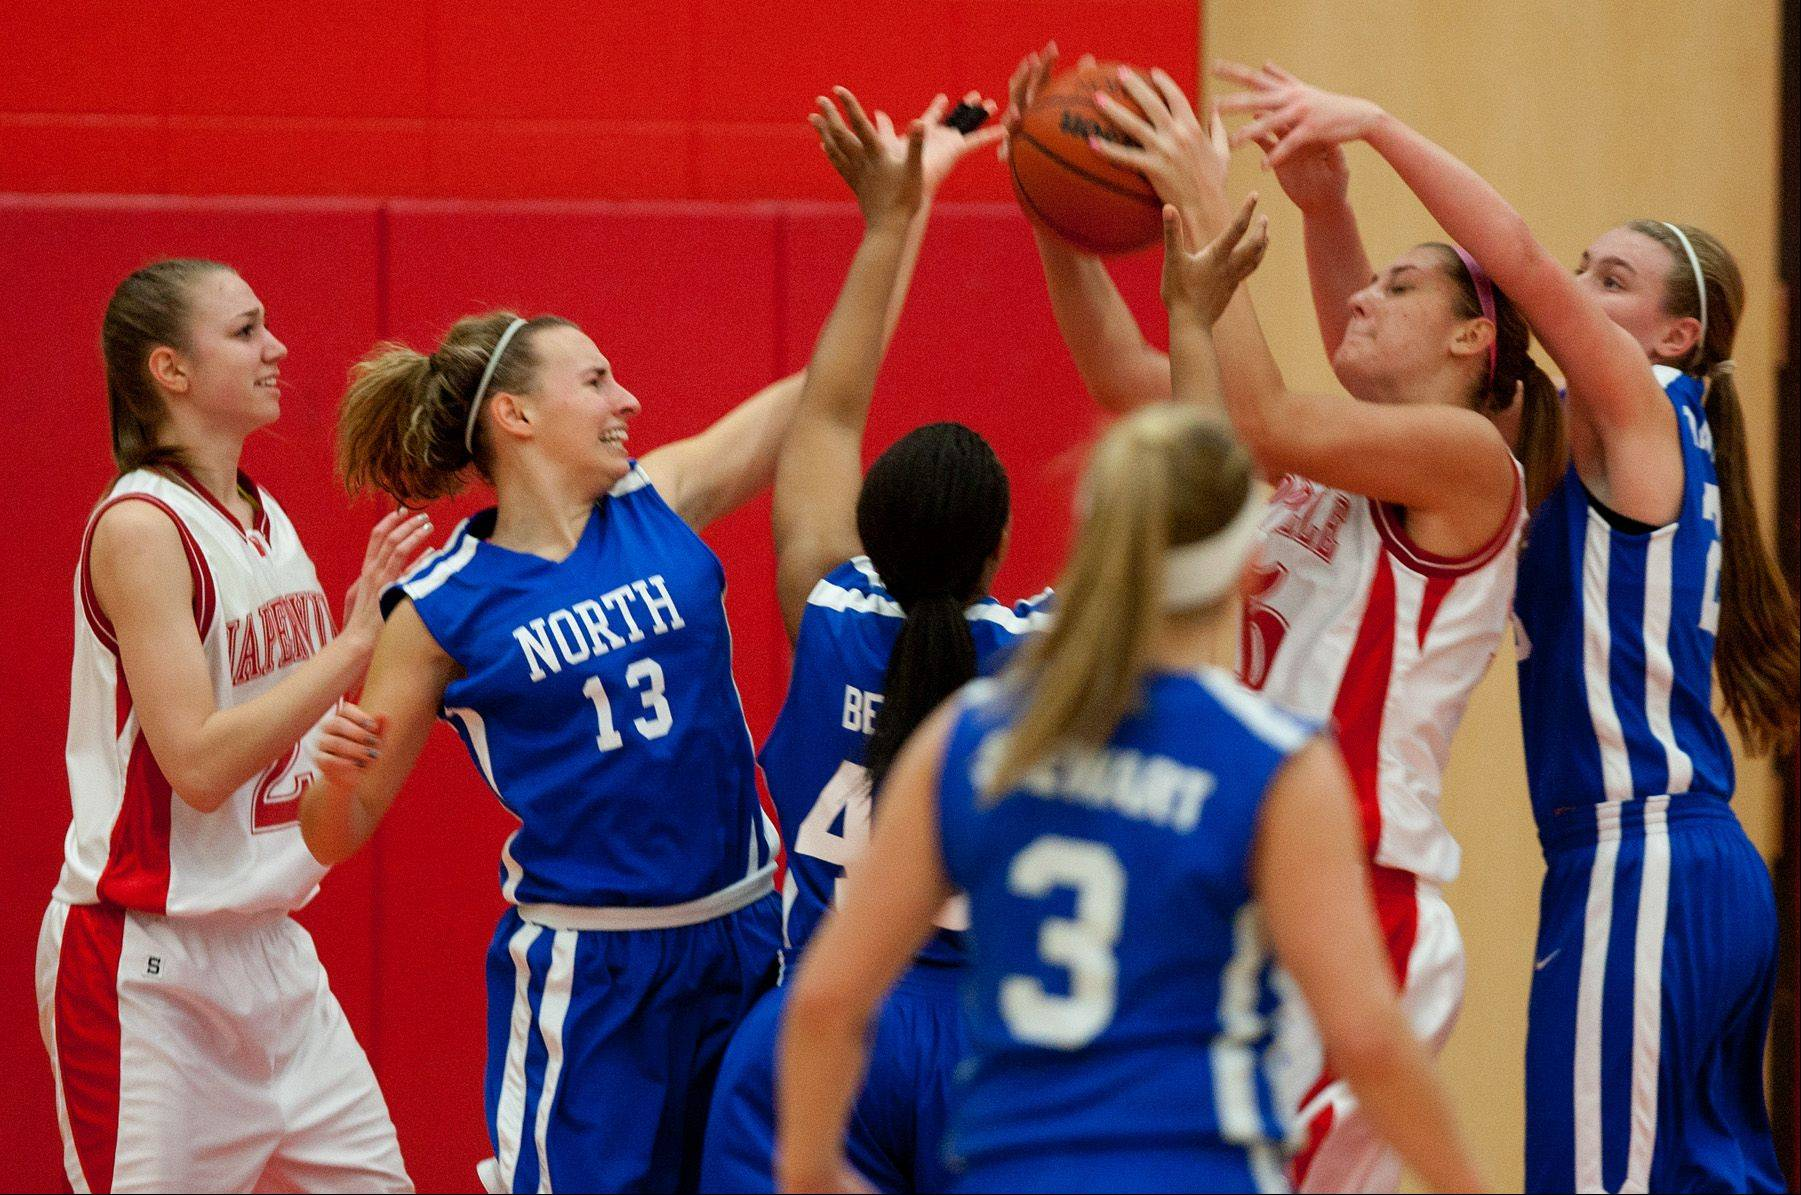 Naperville Central�s Victoria Trowbridge grabs a defensive rebound over Wheaton North, during girls basketball action in Naperville.